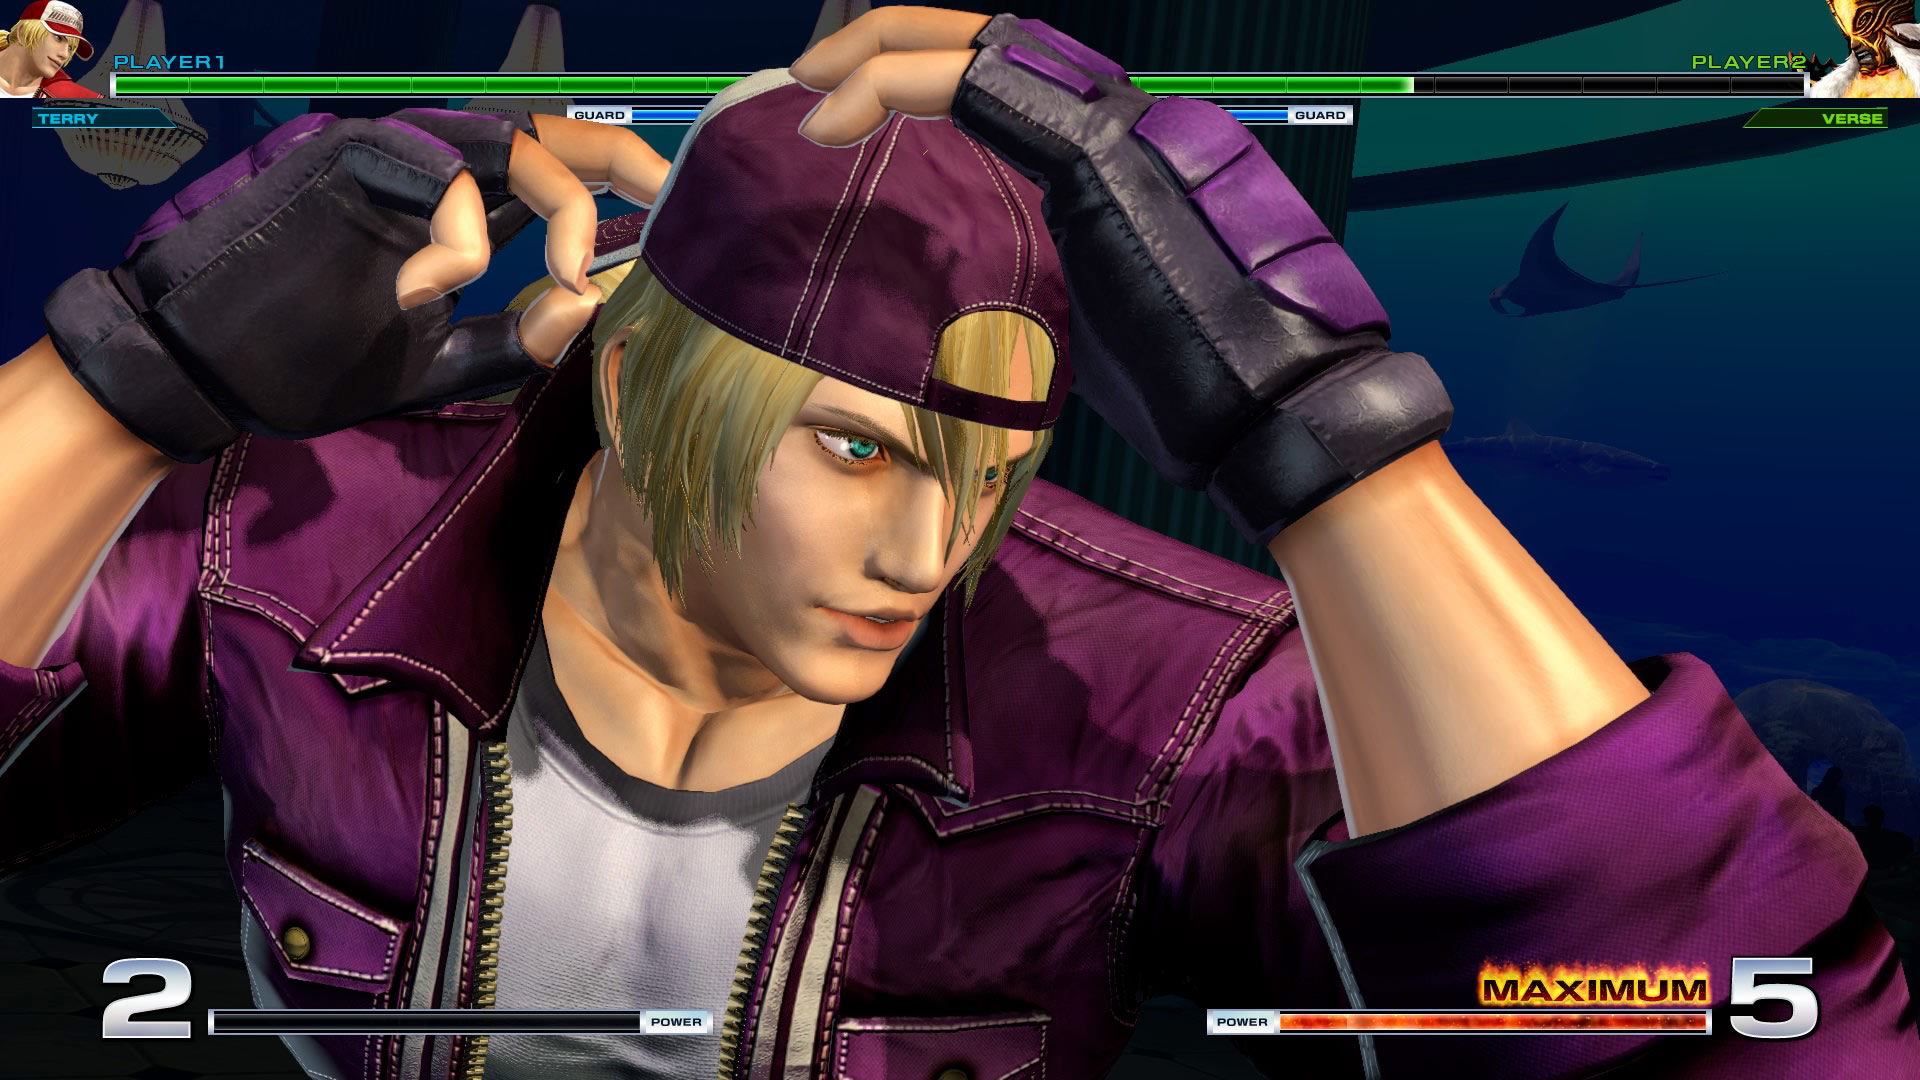 King of Fighters 14 1.10 graphics update 5 out of 60 image gallery